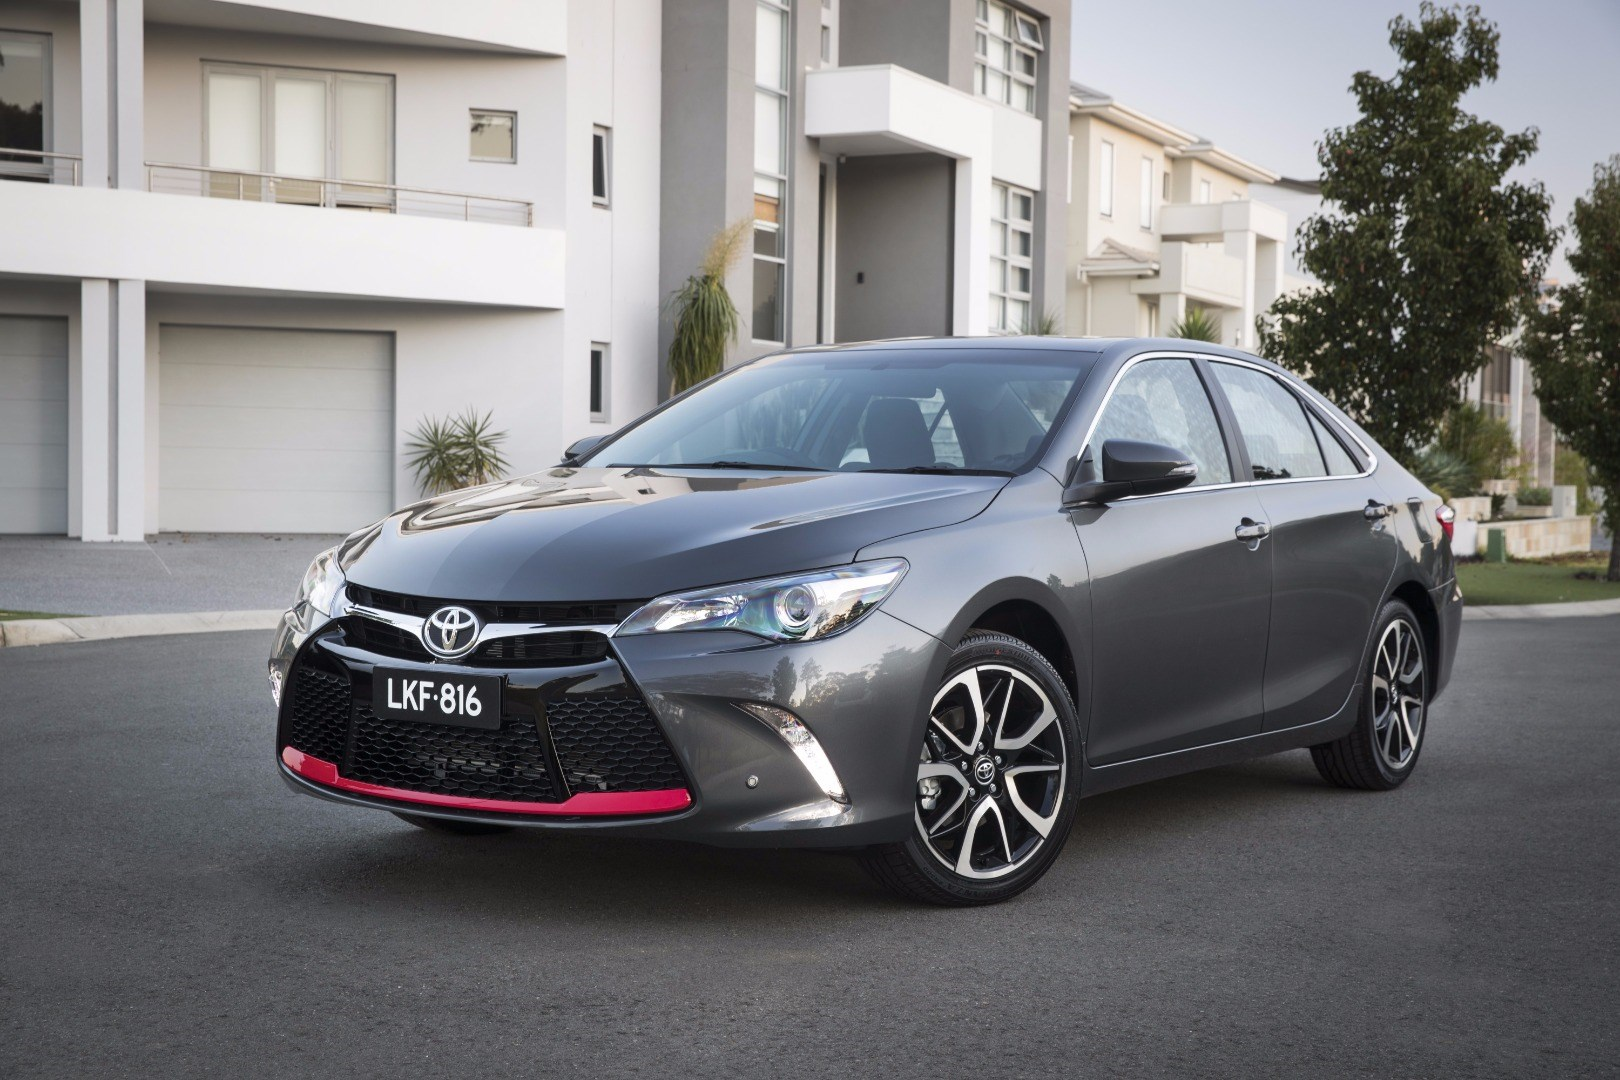 Refreshed Toyota Camry Range On-Sale In June Thumbnail